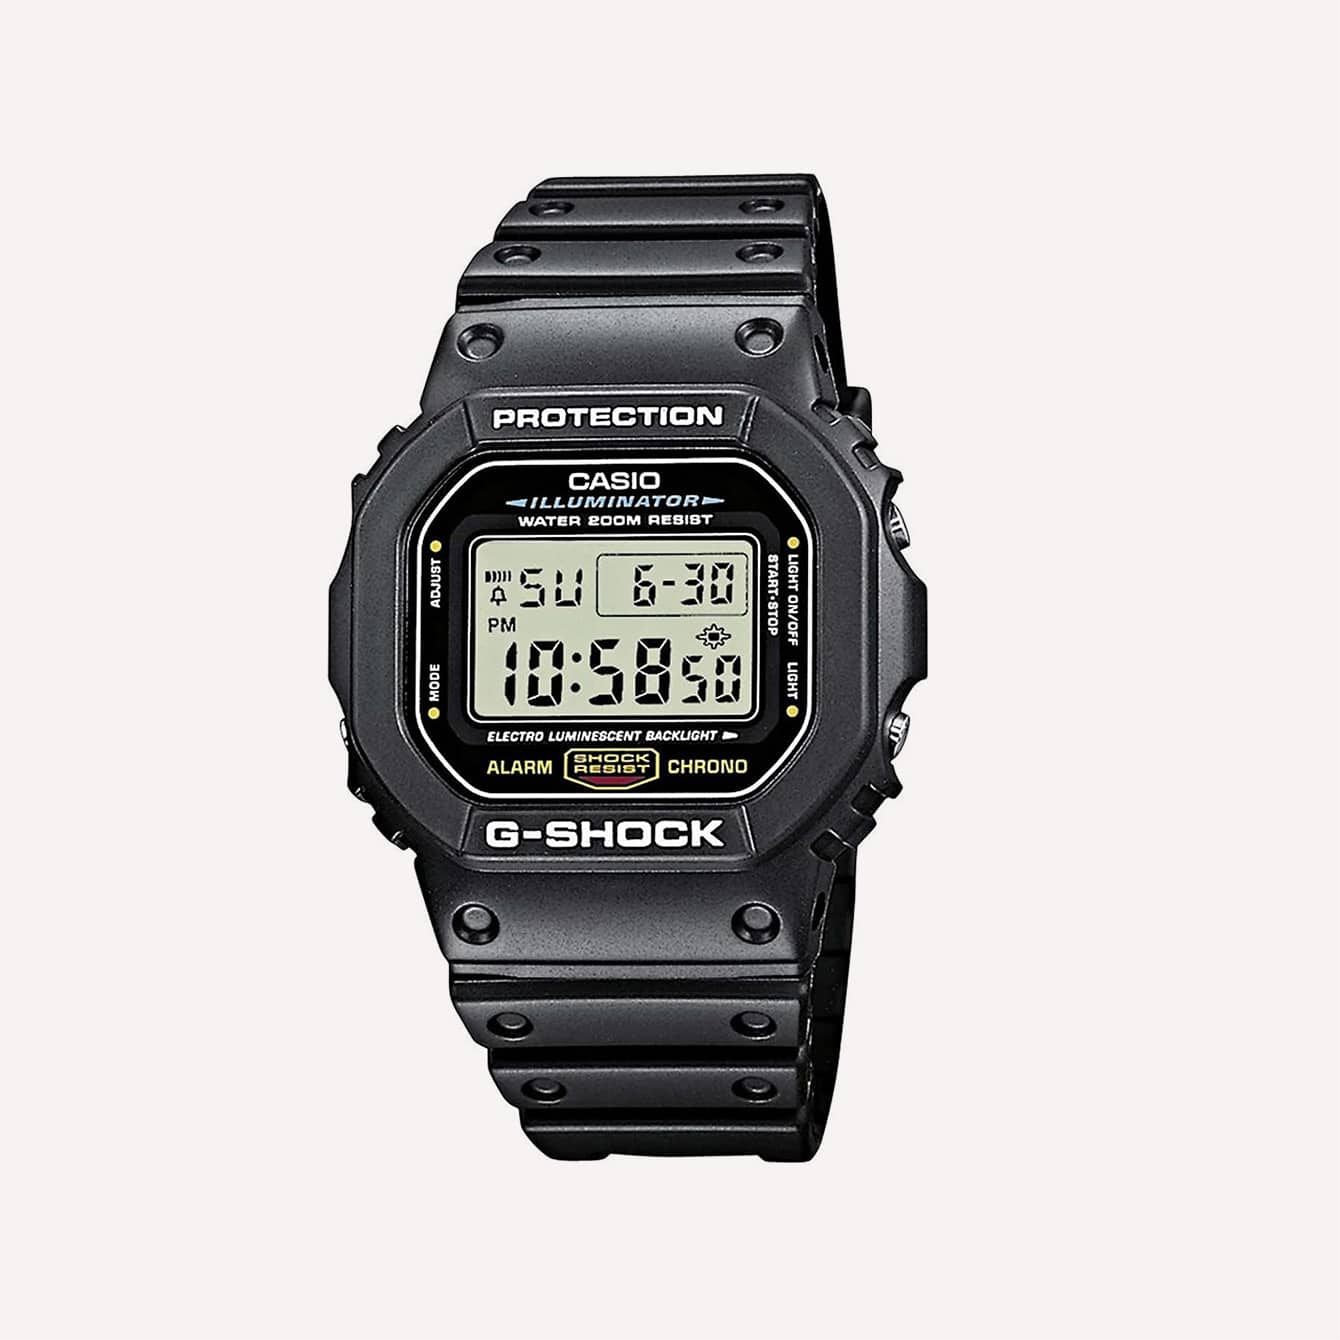 Casio Men s G Shock Quartz Watch with Resin Strap Black 20 Model DW5600E 1V